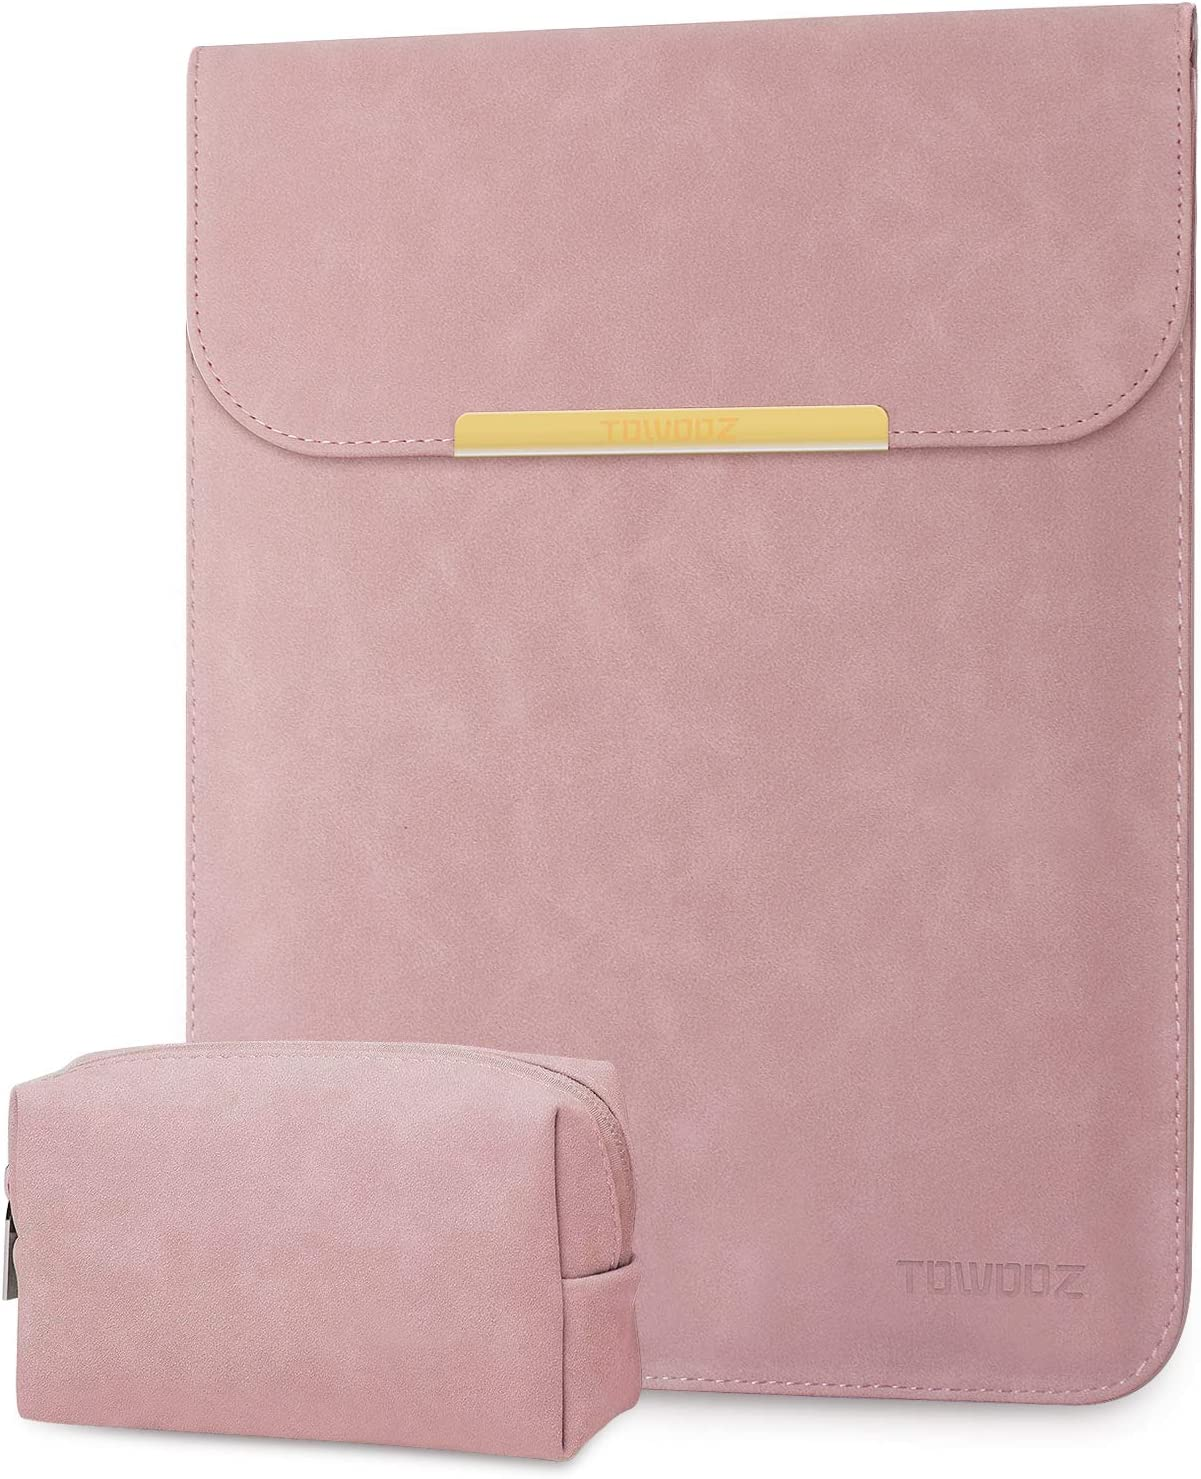 TOWOOZ Laptop Sleeve Case Compatible with MacBook Pro/MacBook Air/iPad Pro 12.9 / Dell XPS 13/ Surface Pro X (13-13.5, Pink)